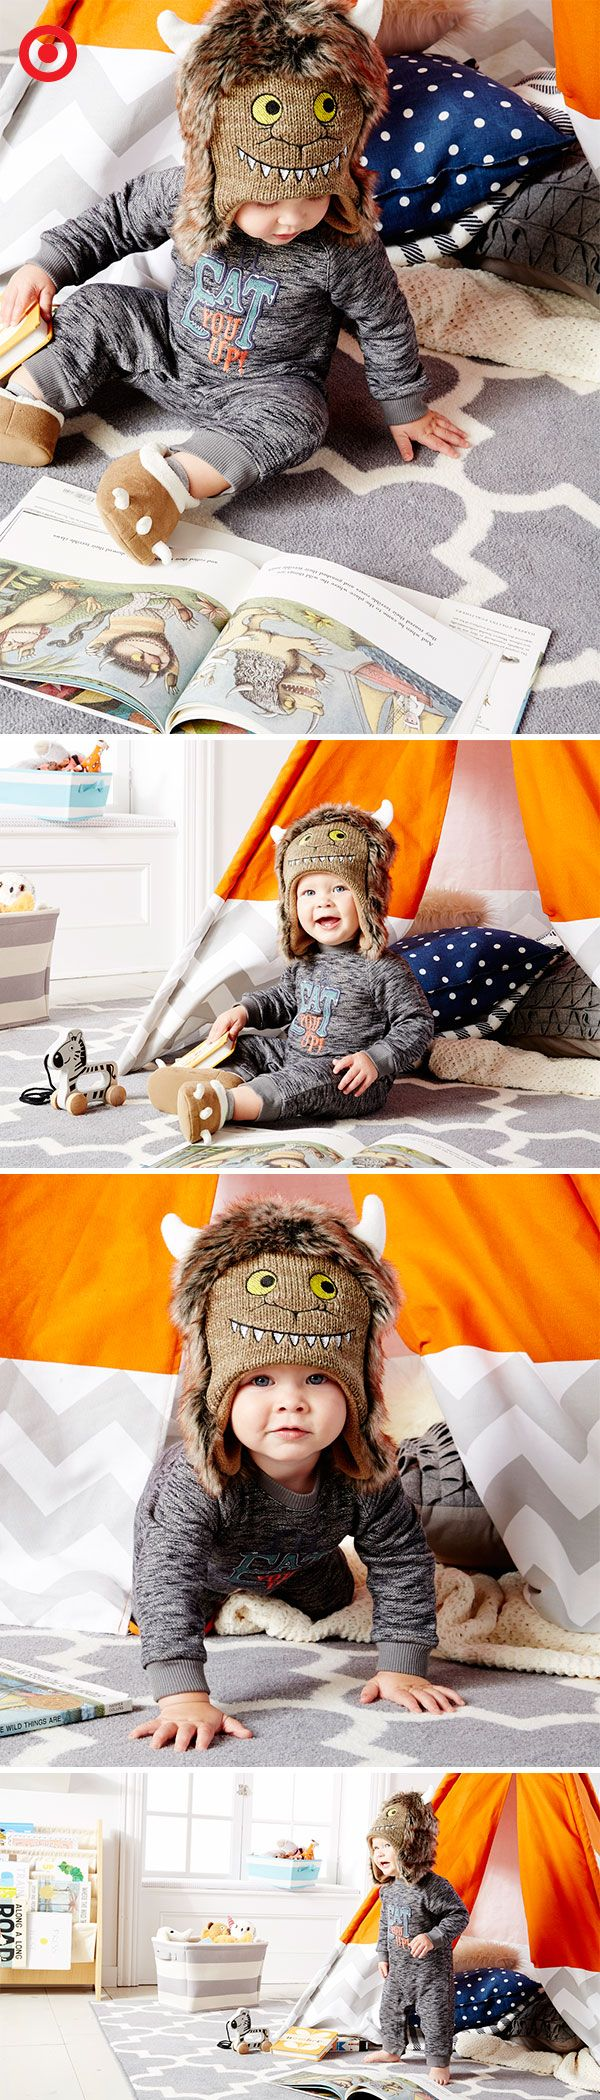 """Go wild for """"Where the Wild Things Are""""! Your babe will look so sweet you'll want to eat him up! The adorable apparel includes a furry monster hat, monster-feet slippers, jumpsuit and mix-and-match separates. Perfect for a little king in the making!"""